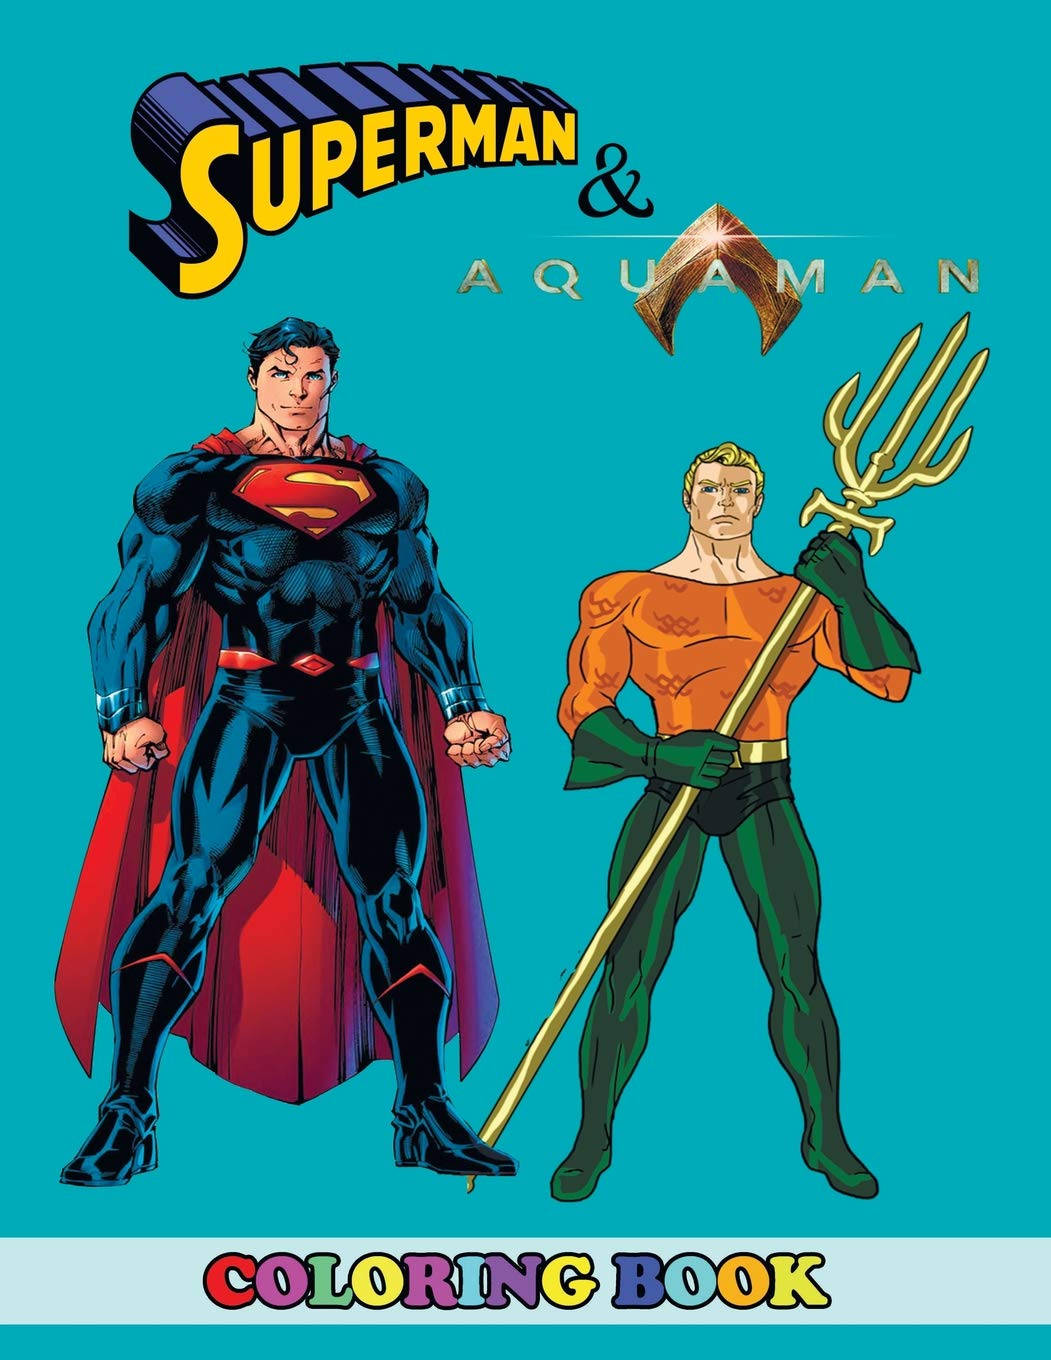 Aquaman and Superman Coloring Book: 2 in 1 Coloring Book for Kids and Adults, Activity Book, Great Starter Book for Children with Fun, Easy, and Relaxing Coloring Pages